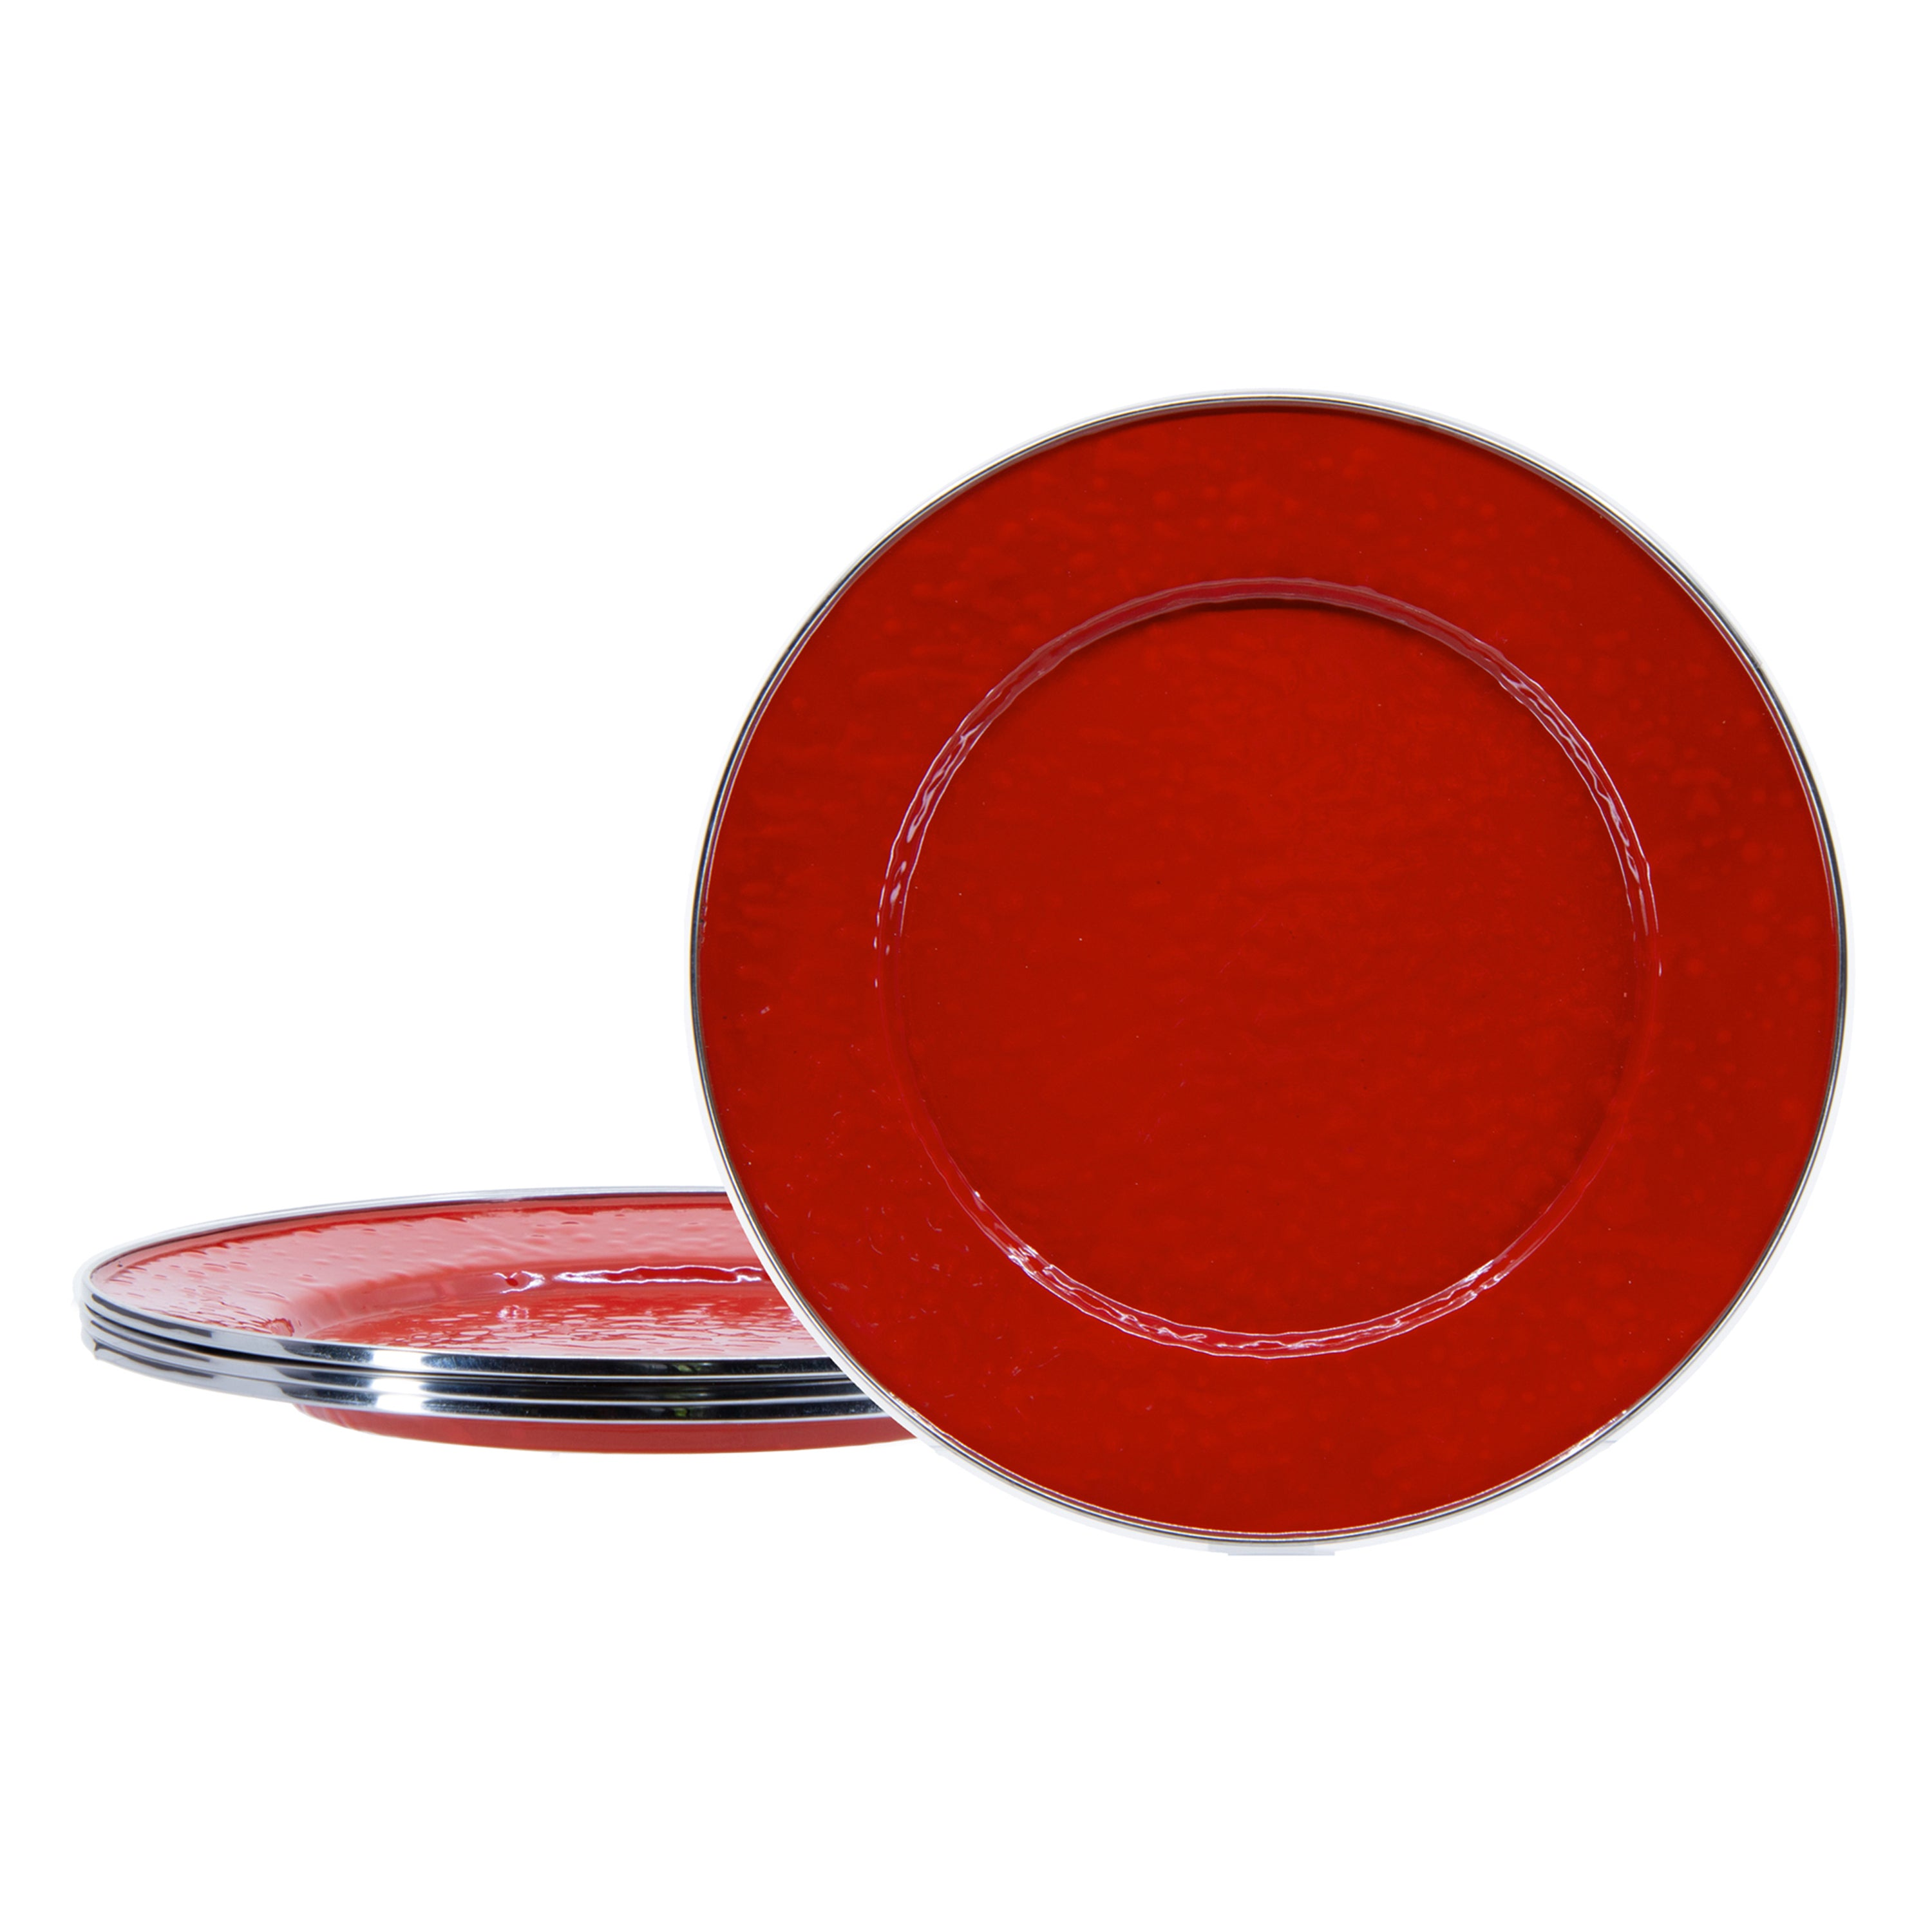 RR07S4 - Set of 4 Solid Red Dinner Plates Image 1